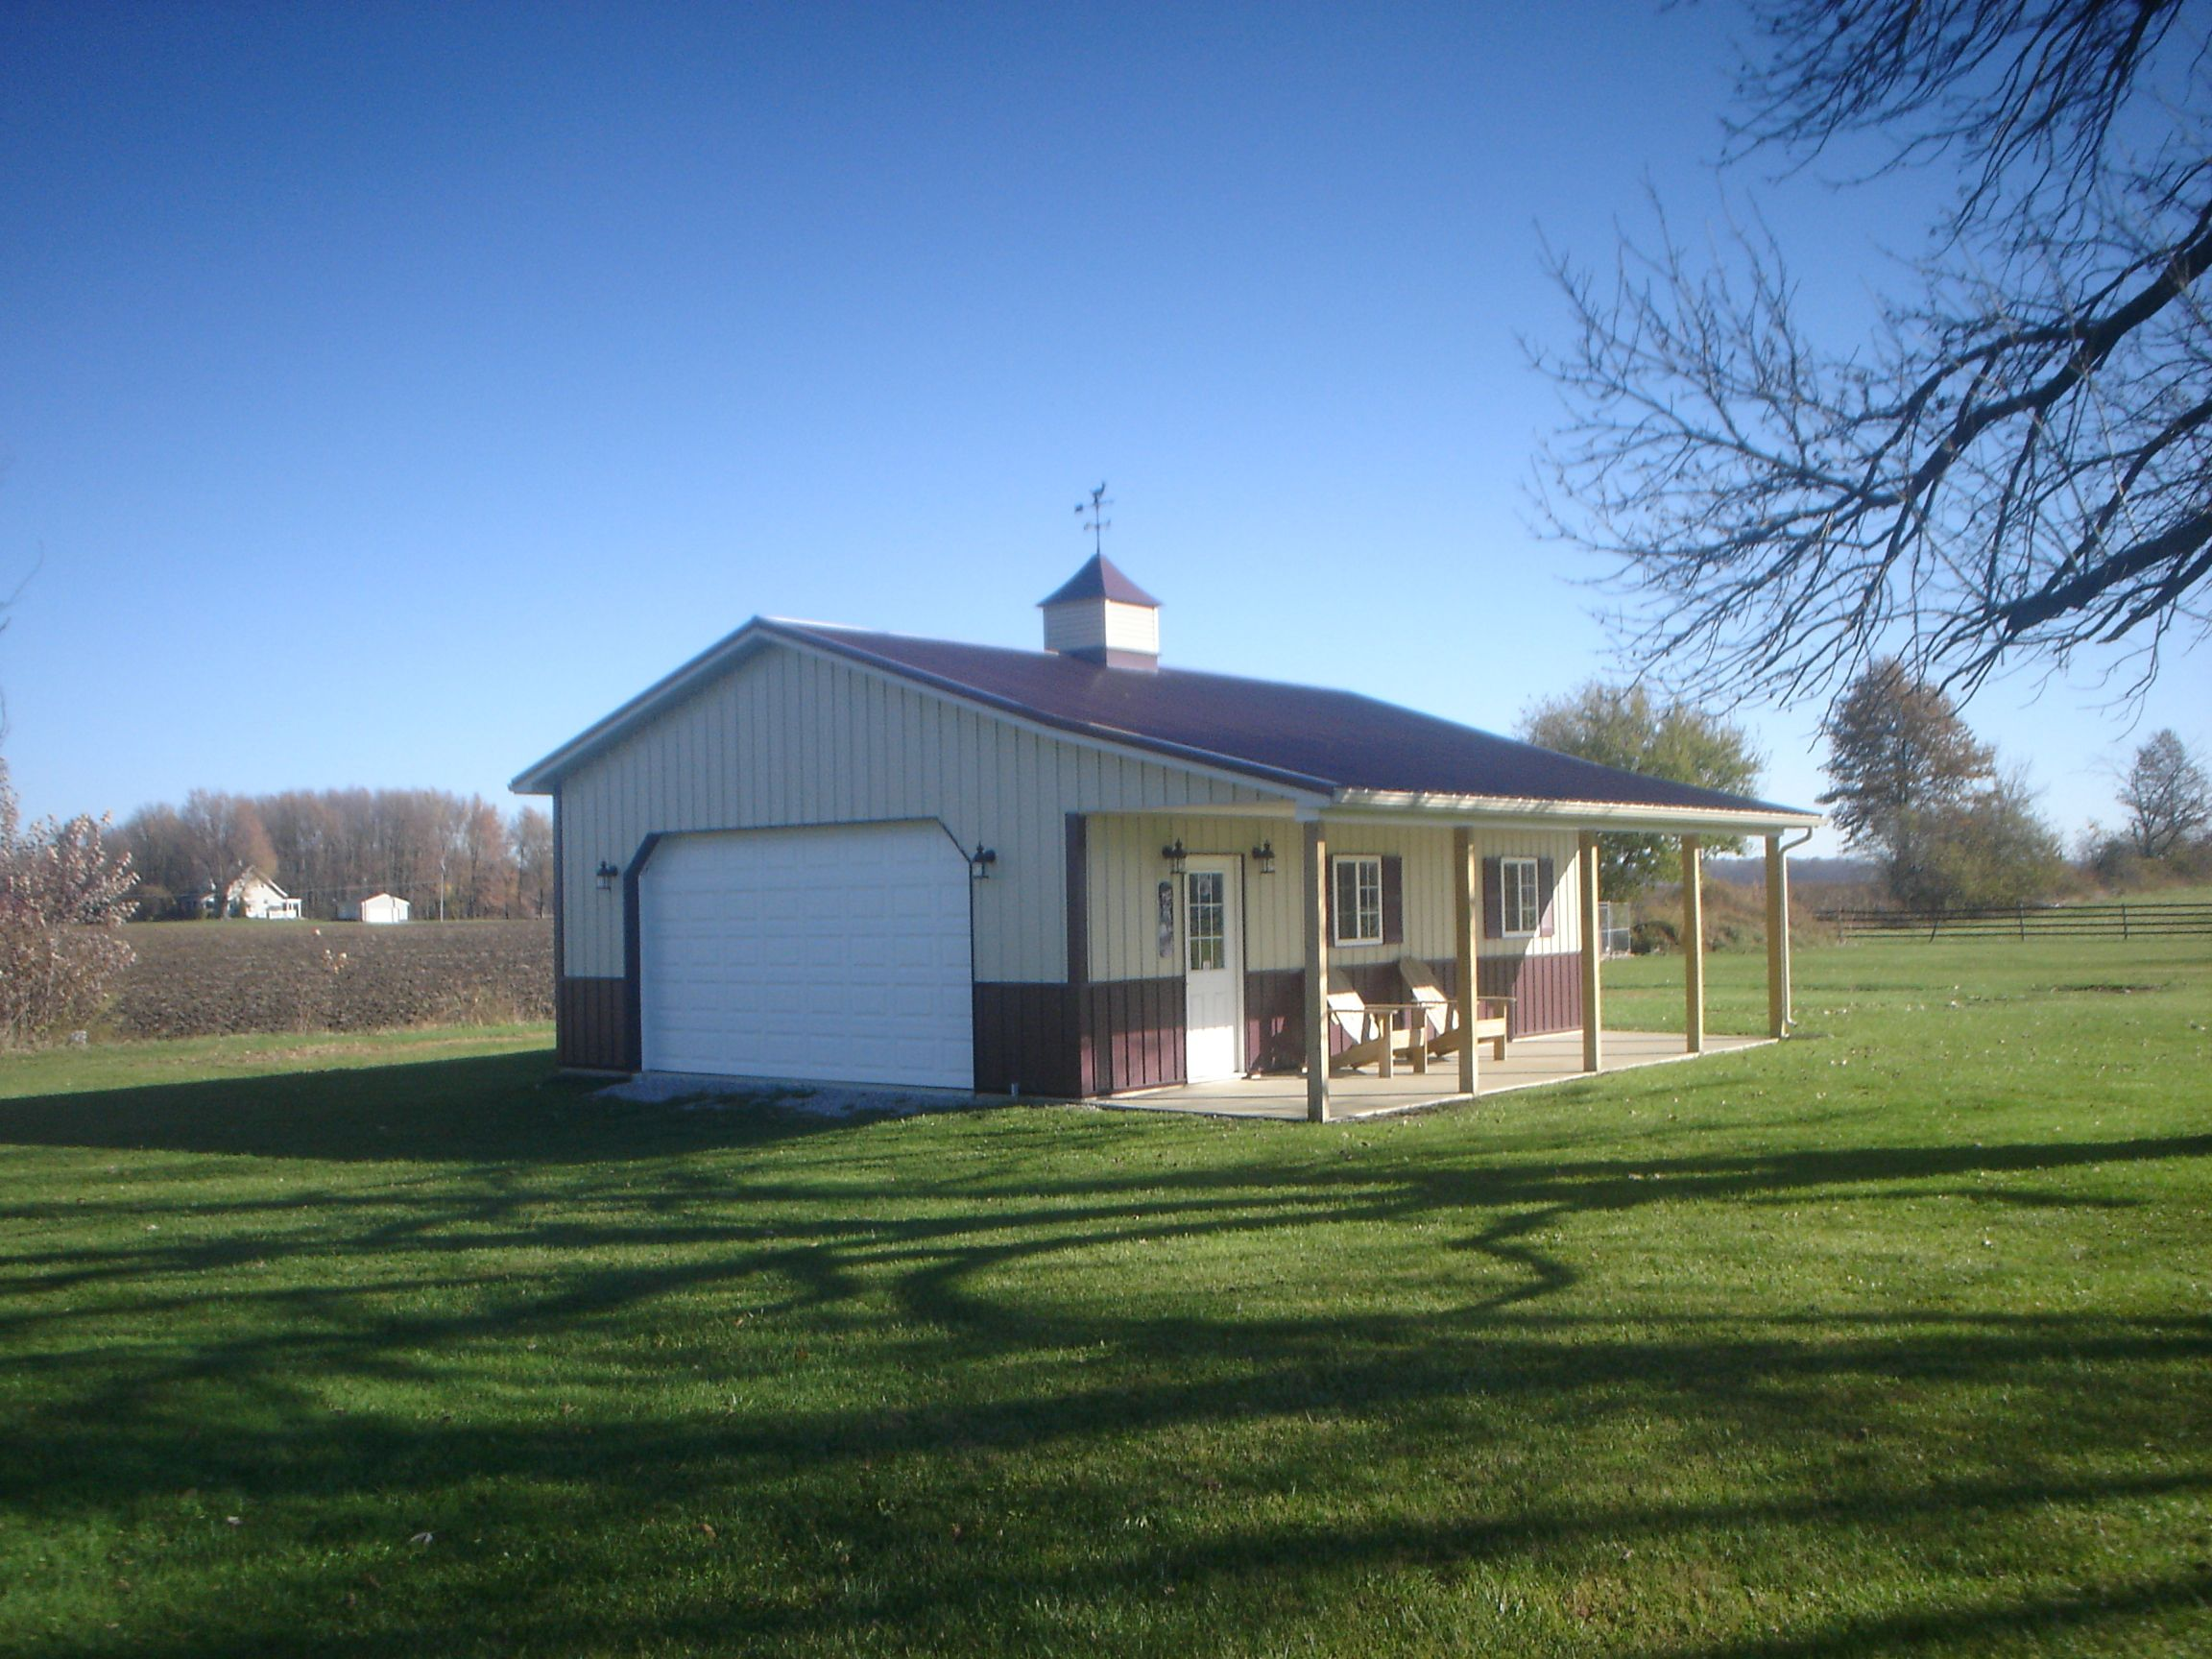 24x32 pole building completed near bucyrus ohio pole